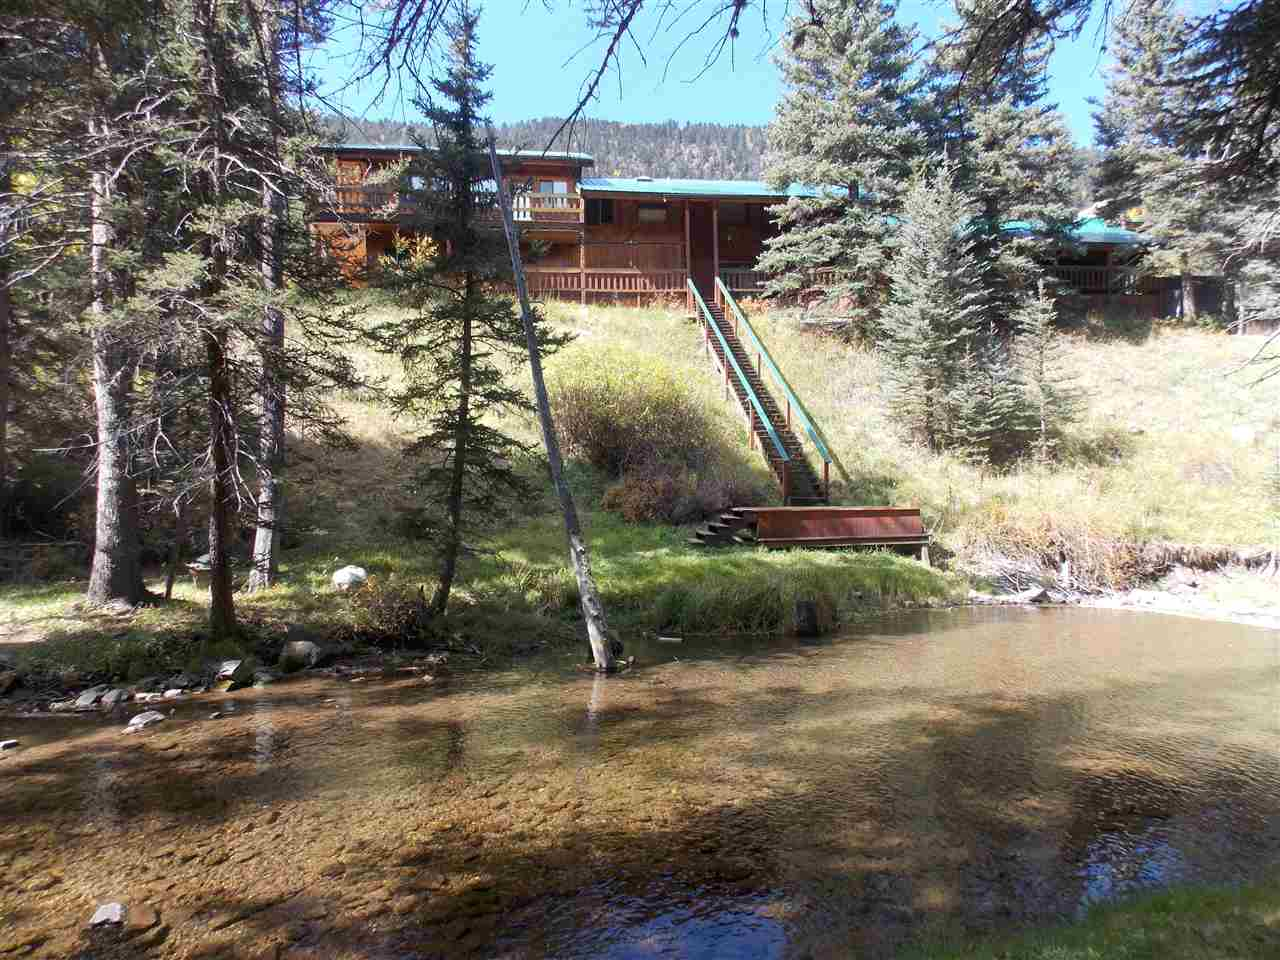 96 Valley of the Pines, Red River, NM 87558-0096